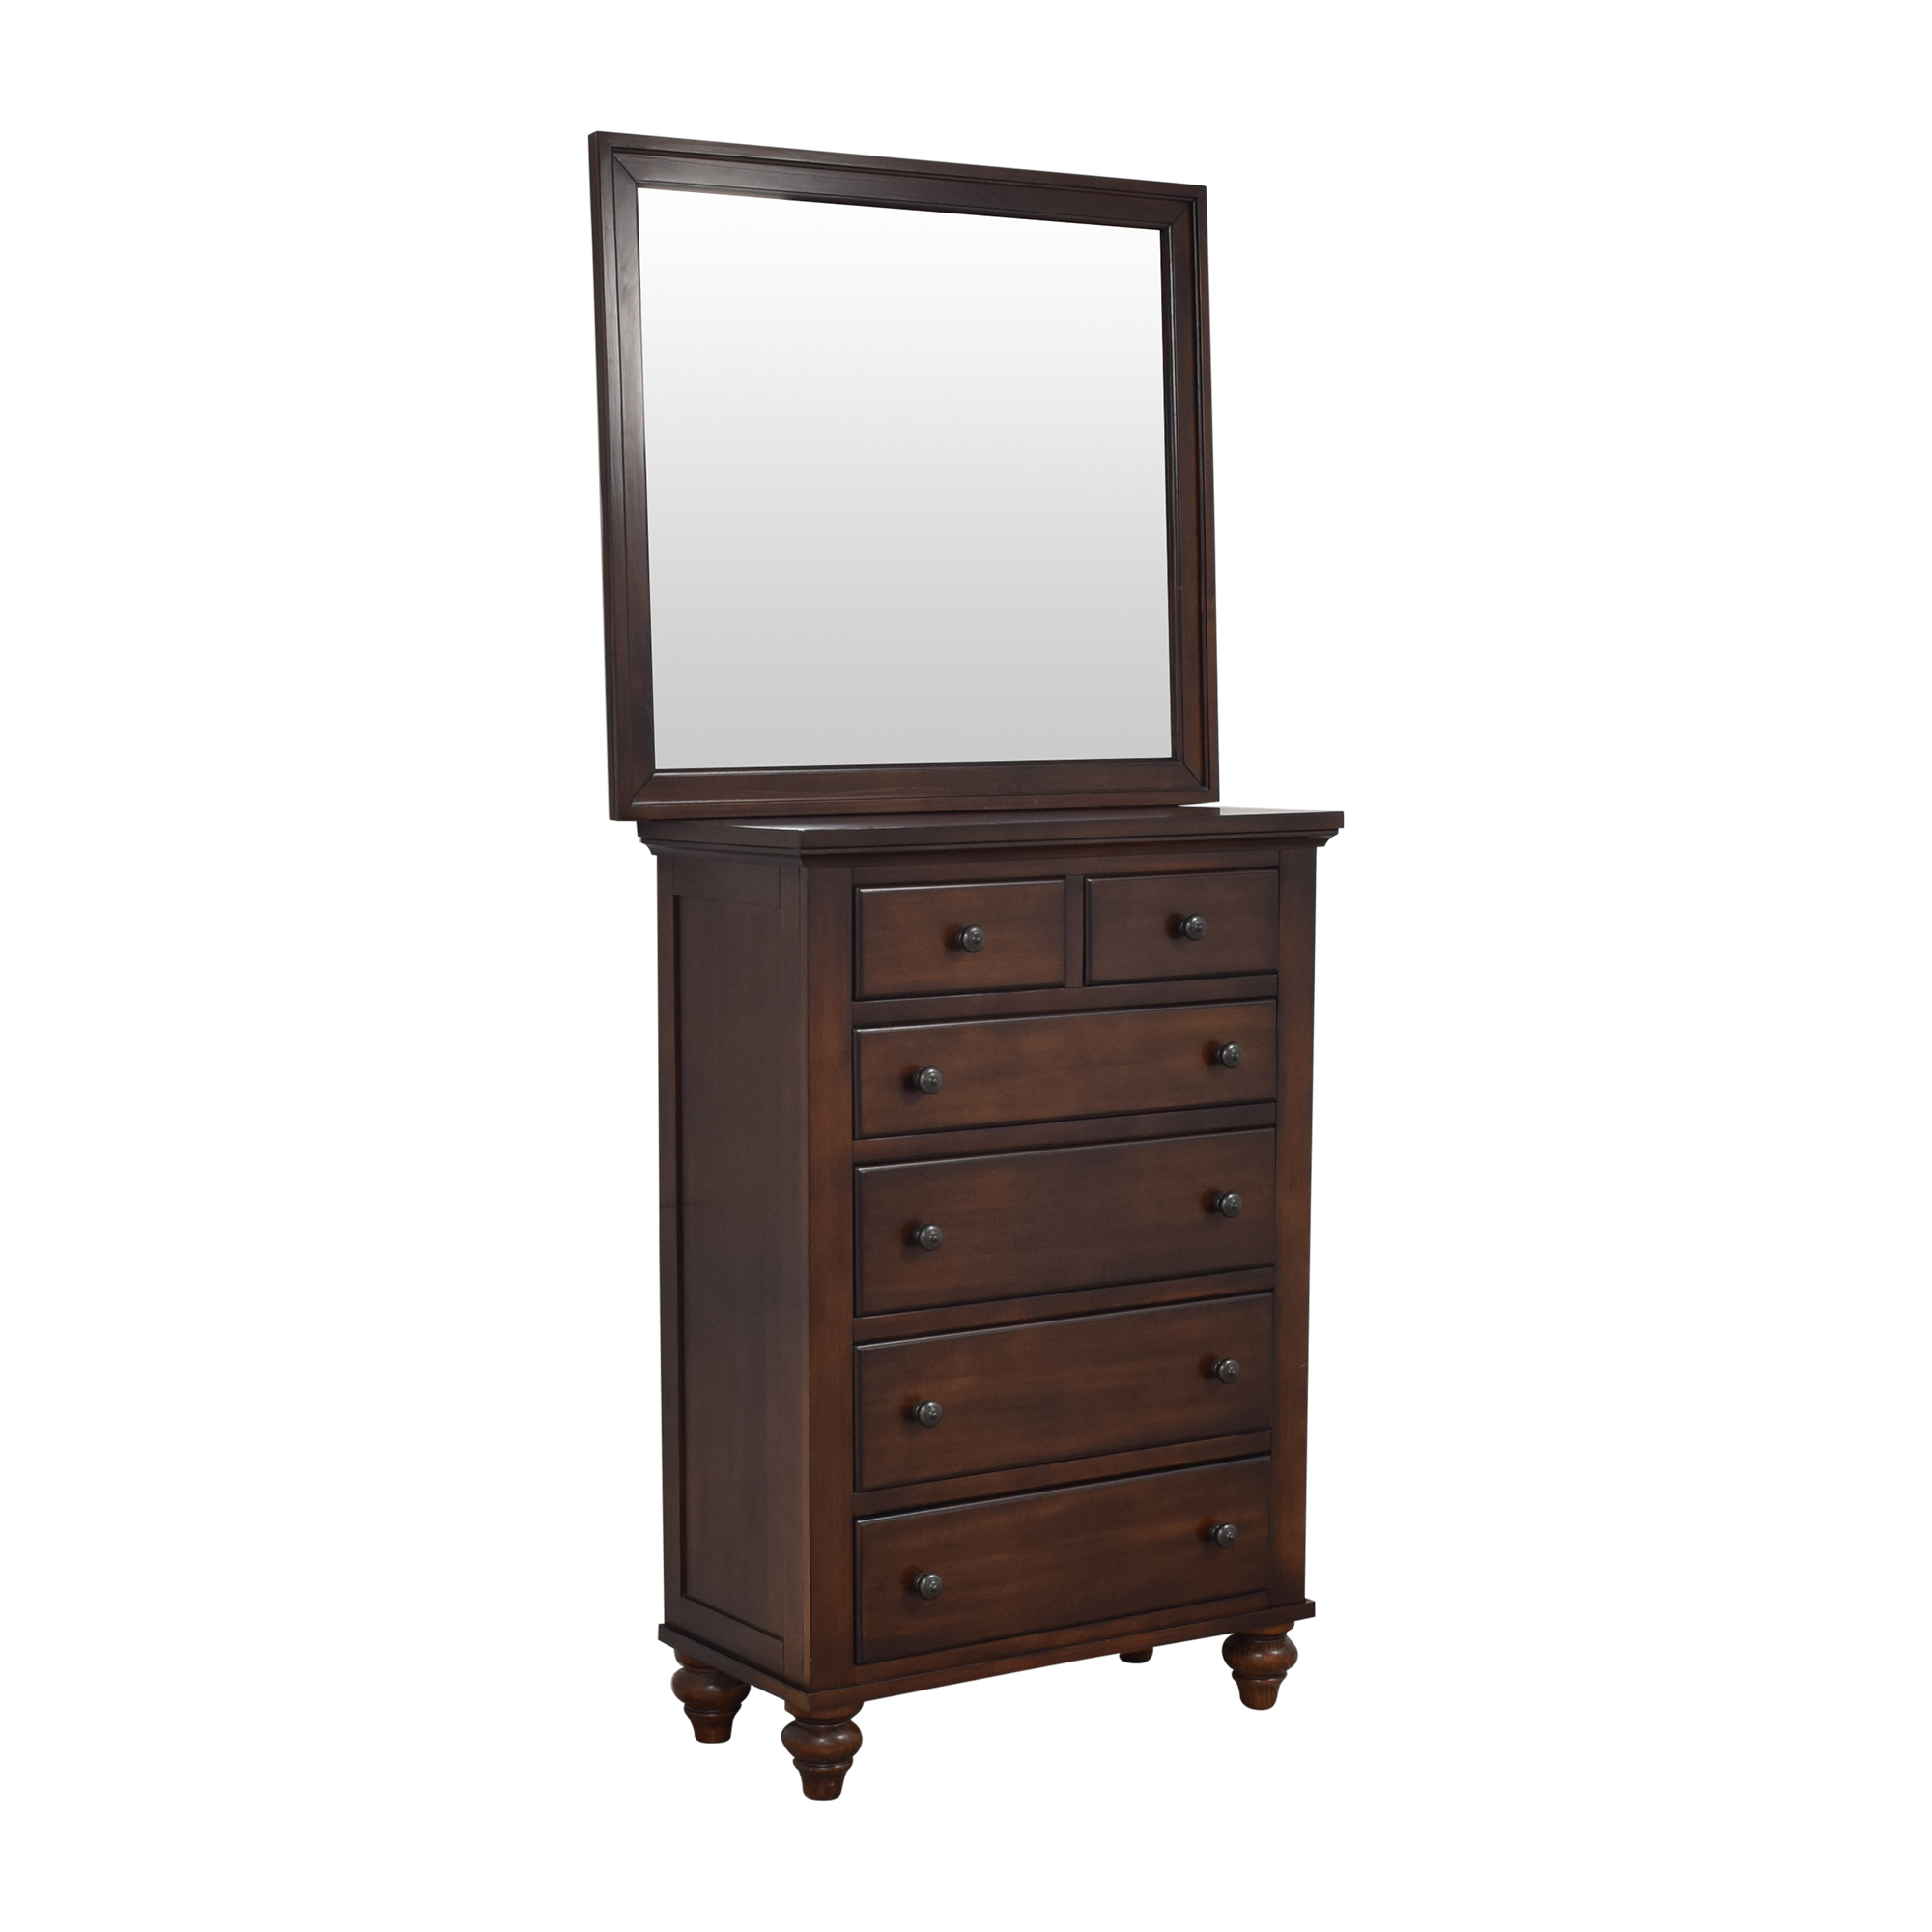 Raymour & Flanigan Raymour & Flanigan Six Drawer Chest with Mirror nyc